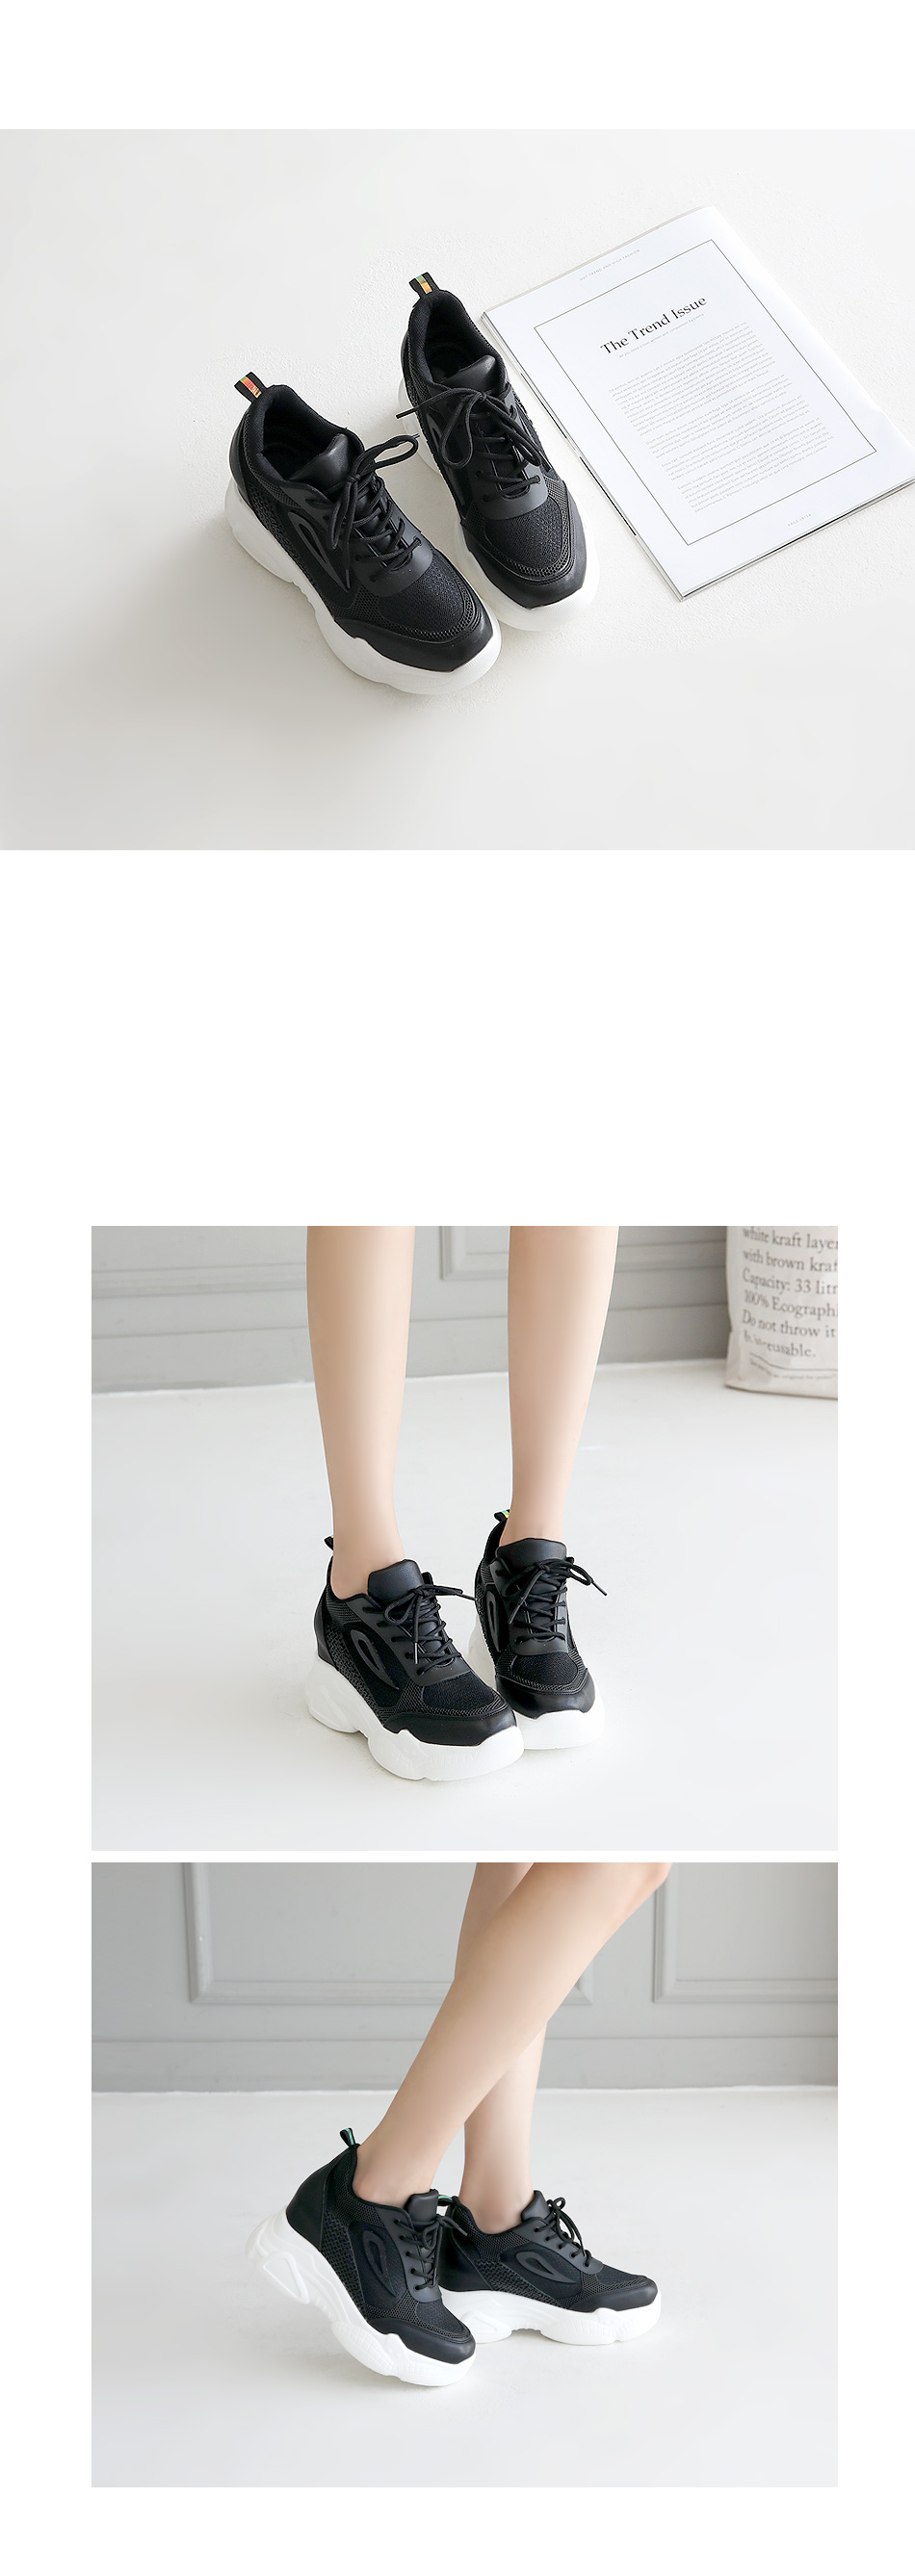 Nuube sneakers 7cm tall